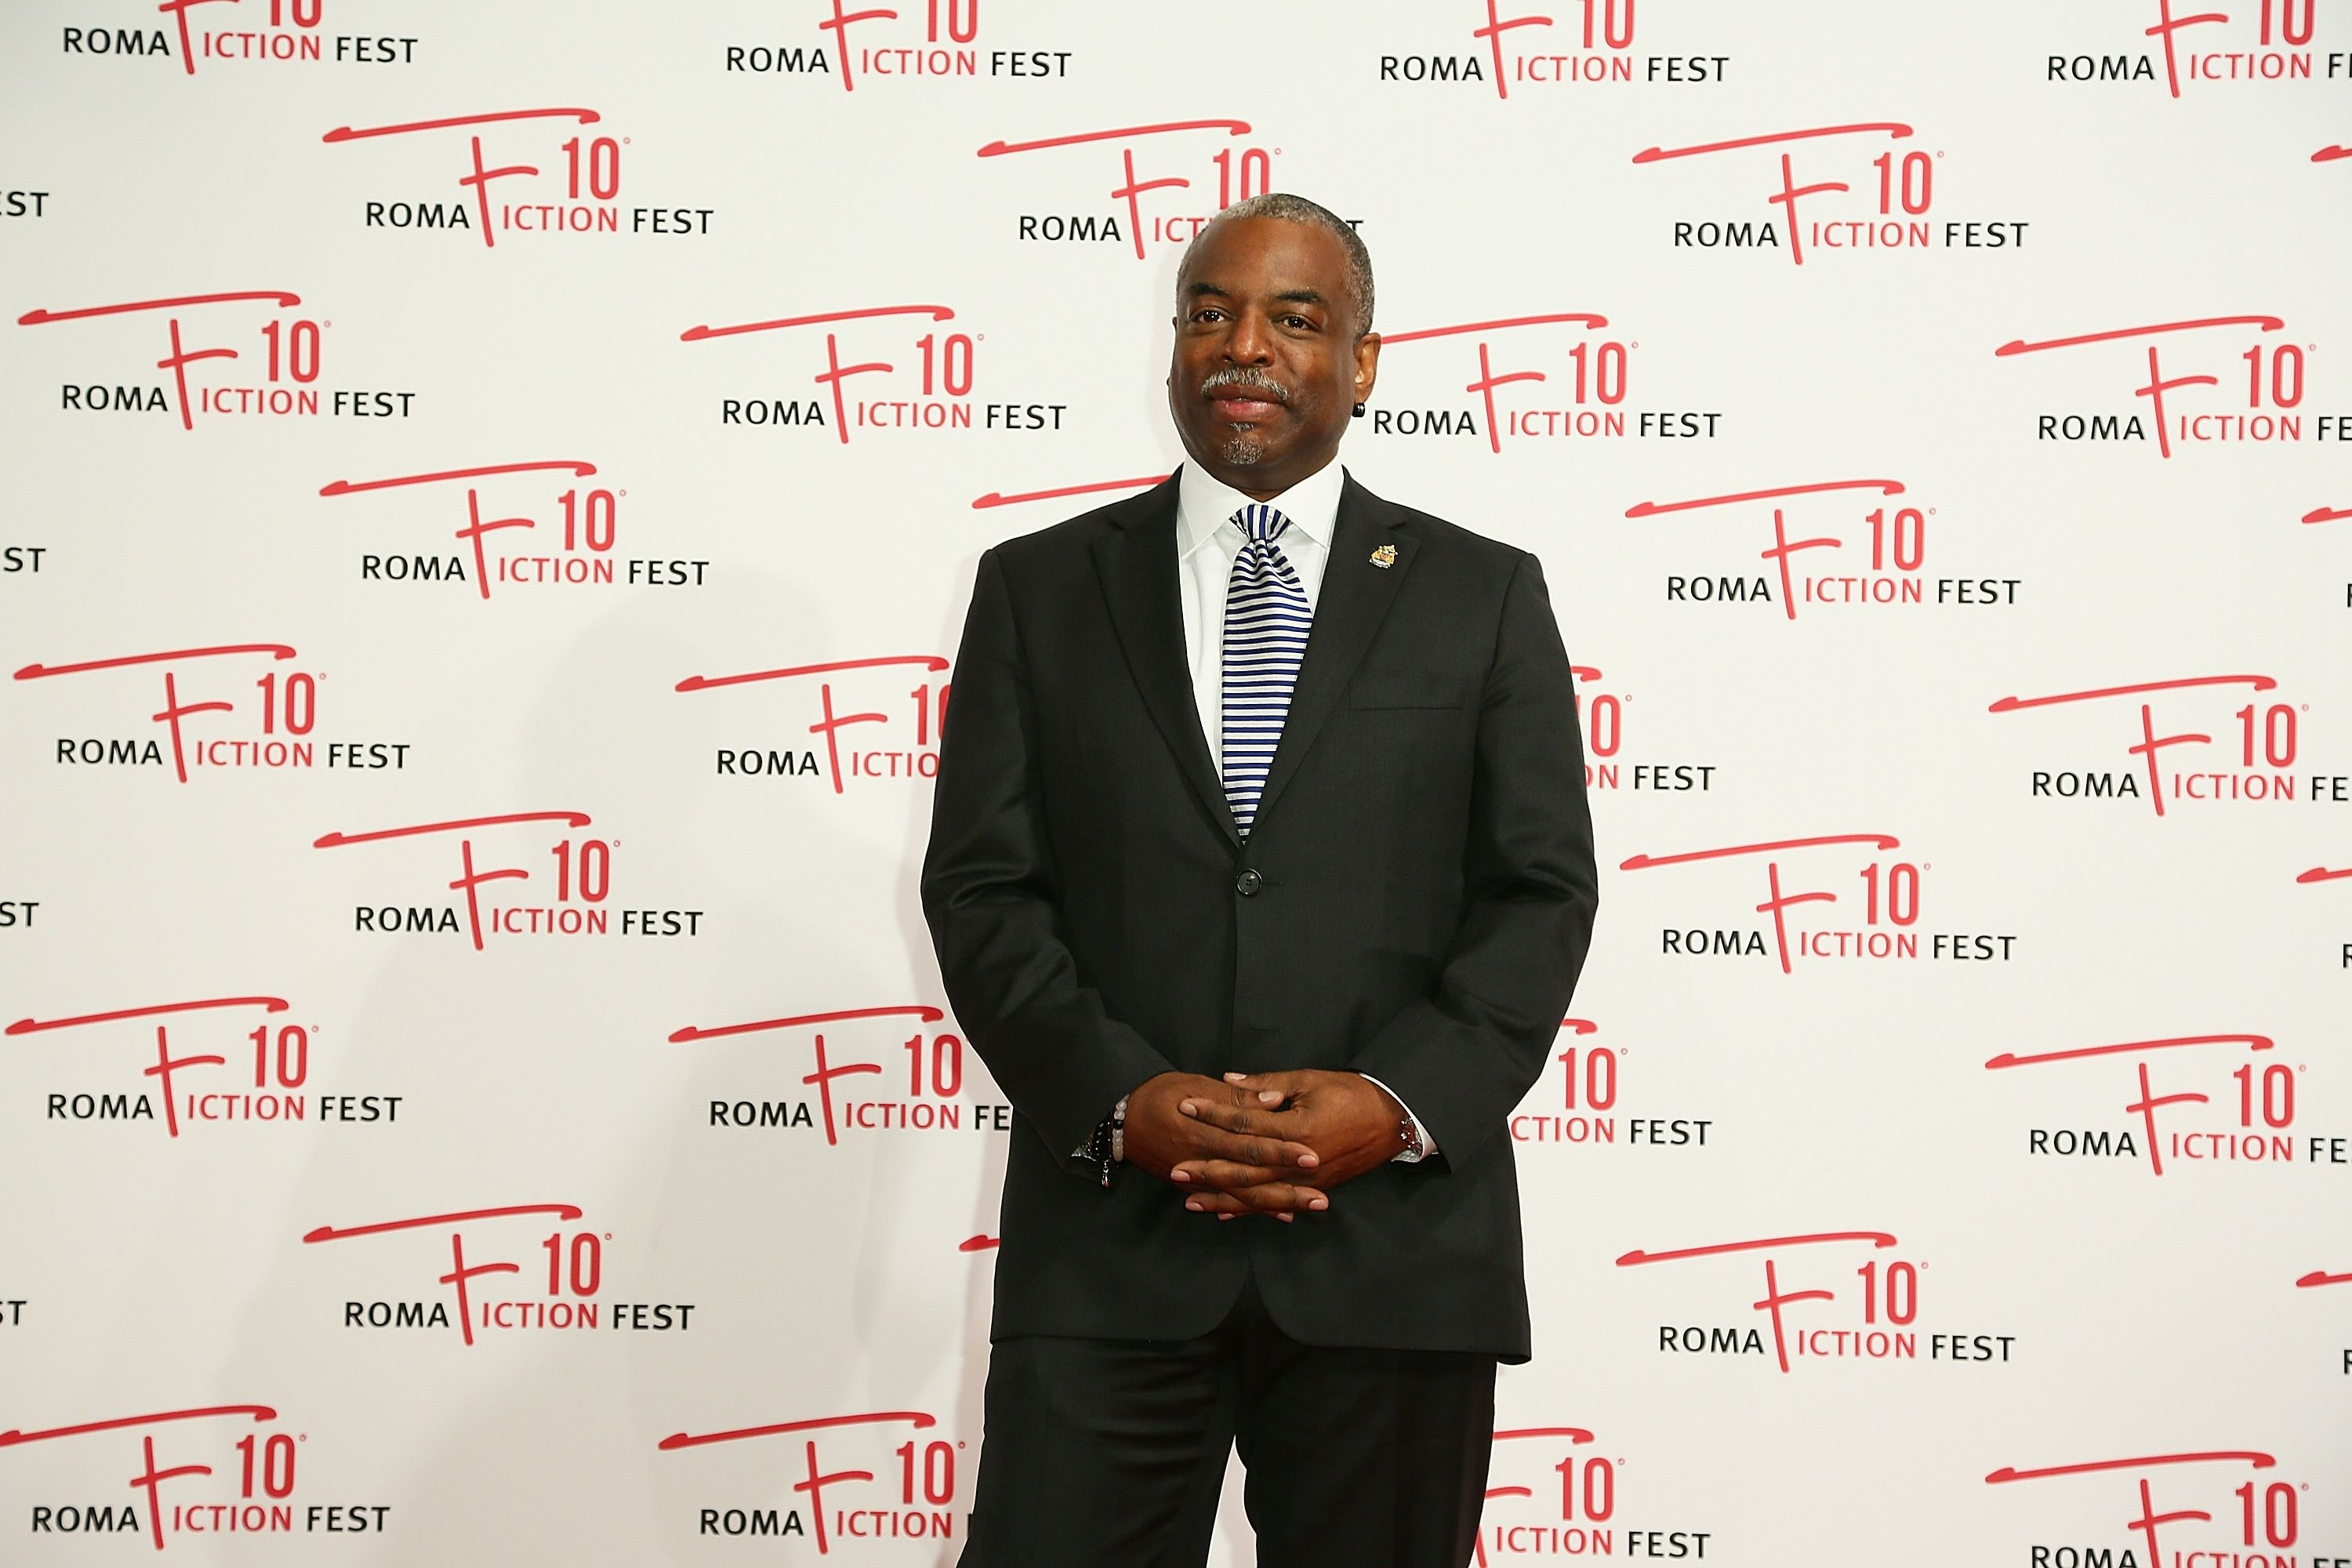 LeVar Burton at the 'Roots' red carpet on December 8, 2016 in Rome. | Photo: Getty Images